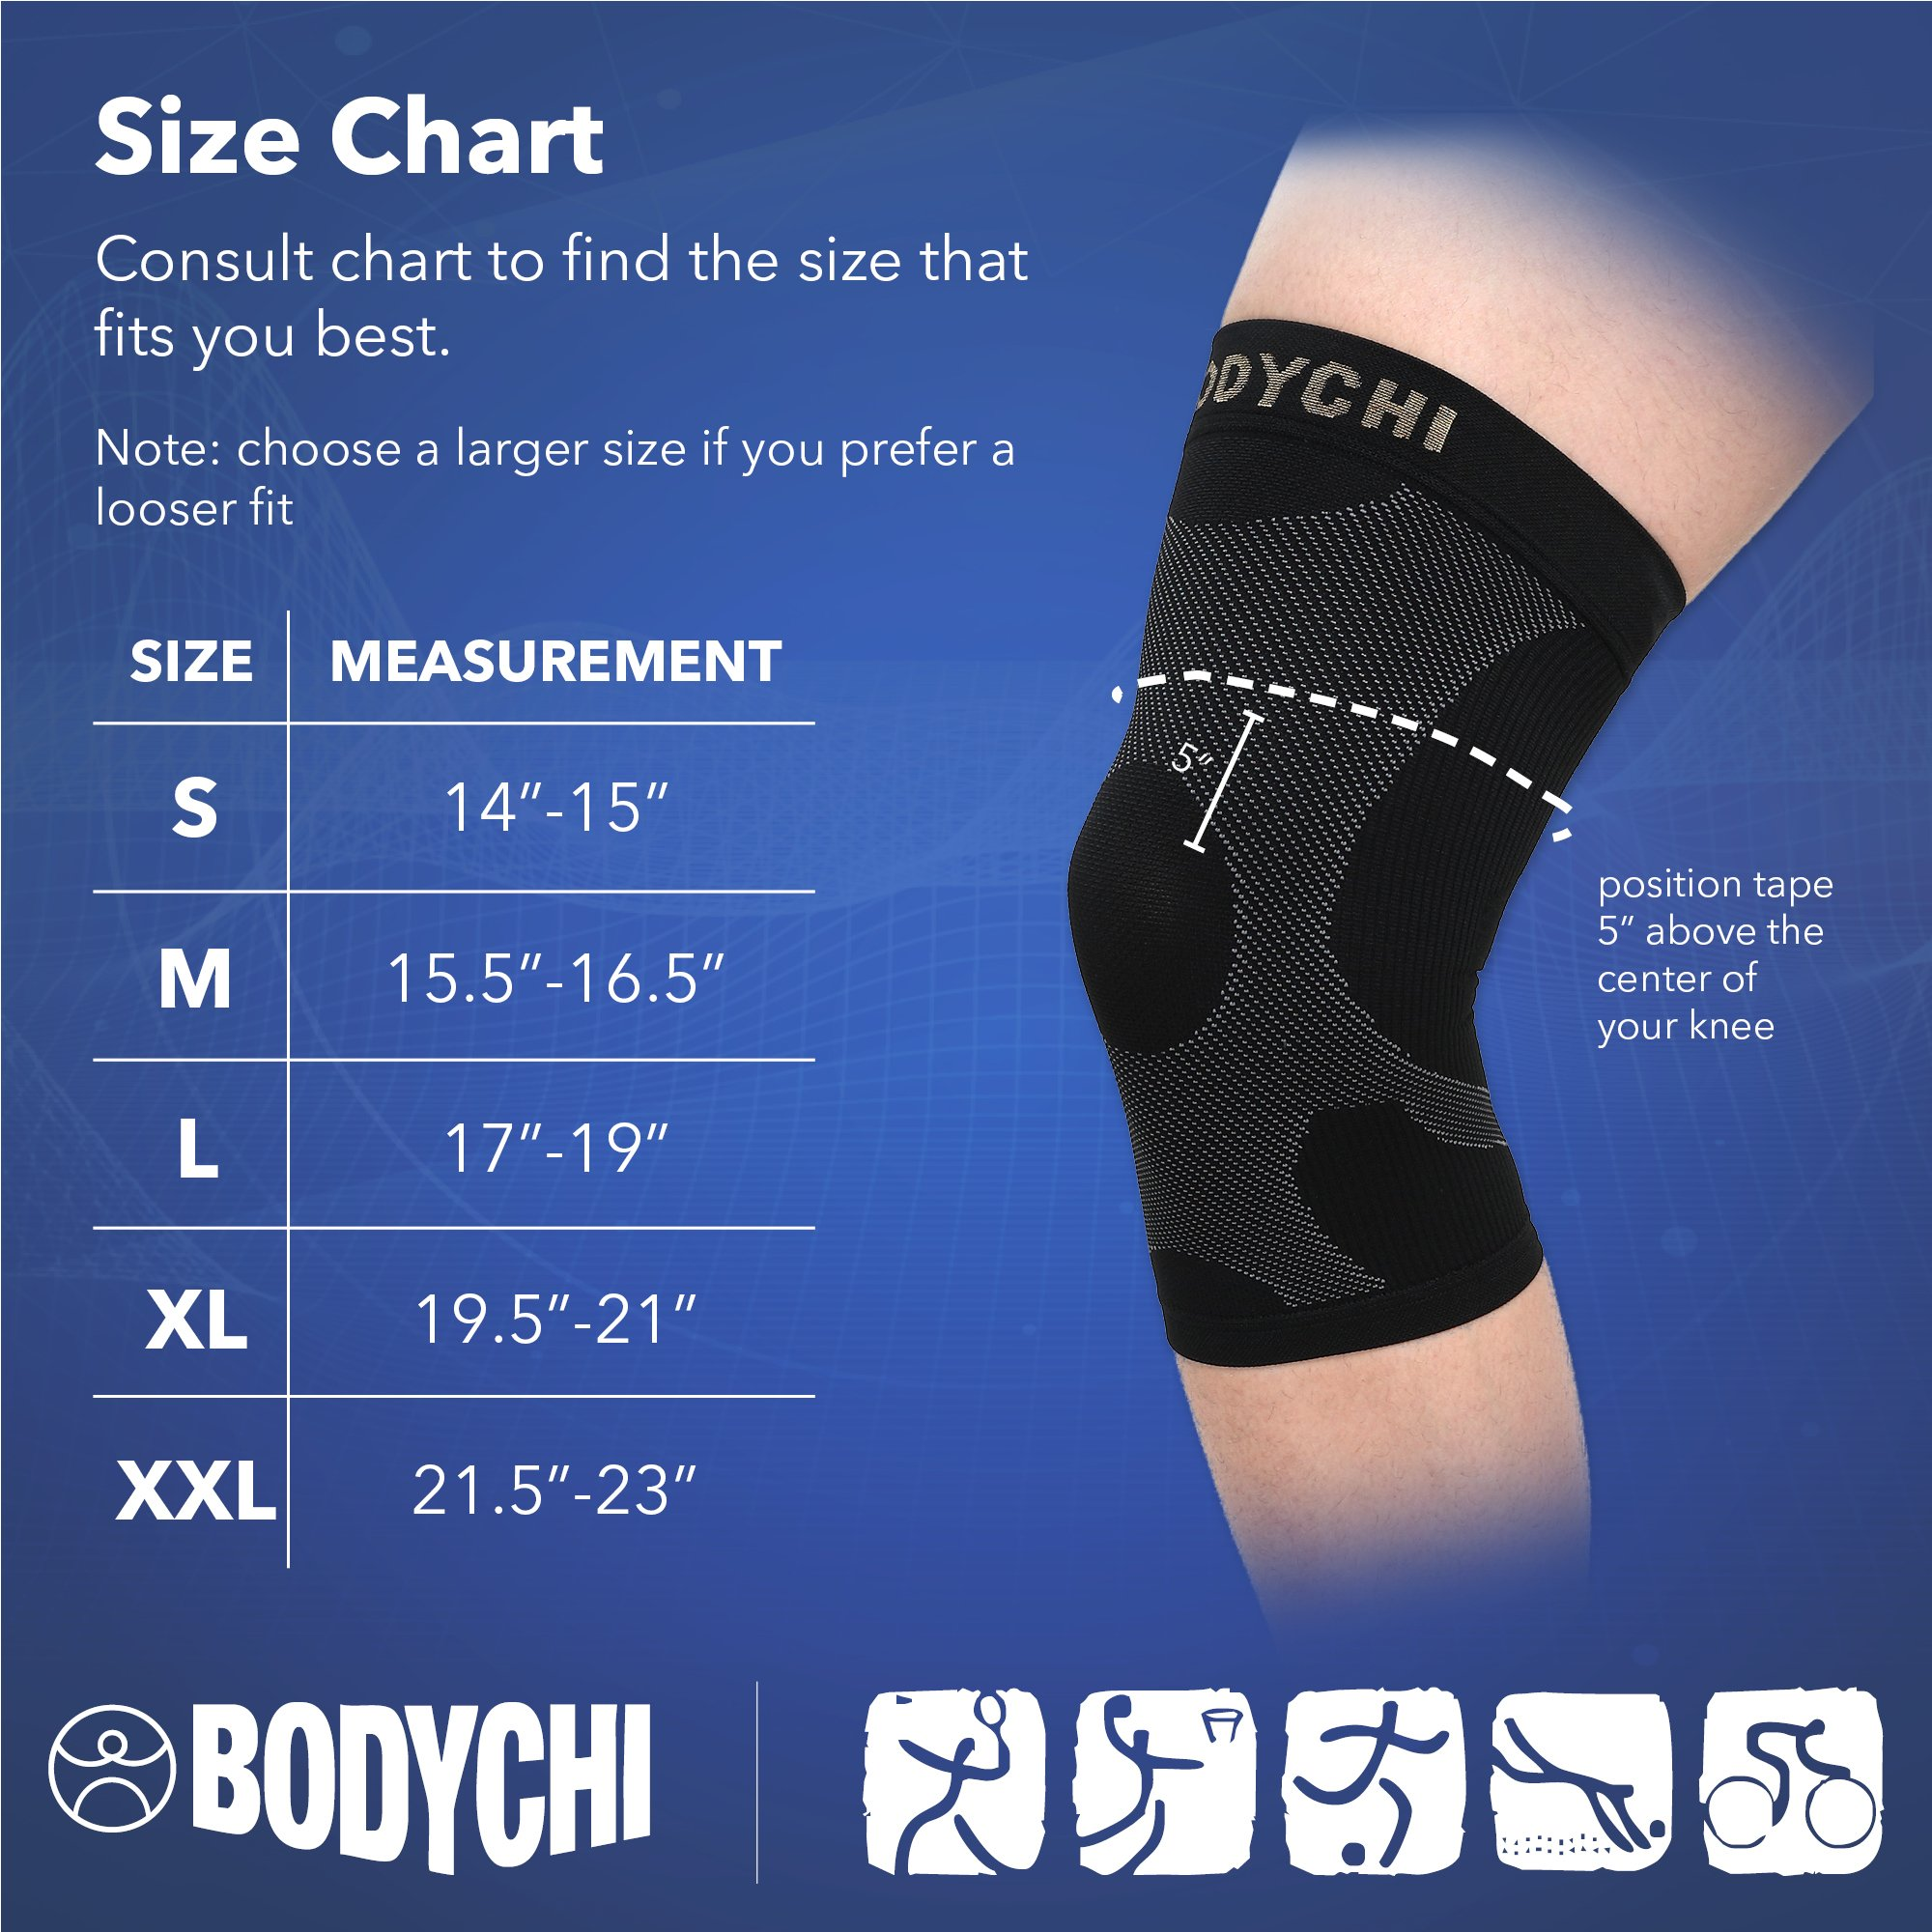 BODYCHI Men and Women Seamless 20-30 mmHg Compression Knee Support Sleeve for Joint Protection and Support for Running, Sports, Knee Pain Relief, Knee Sleeve, Comes in a Pair, Large by BODYCHI (Image #2)